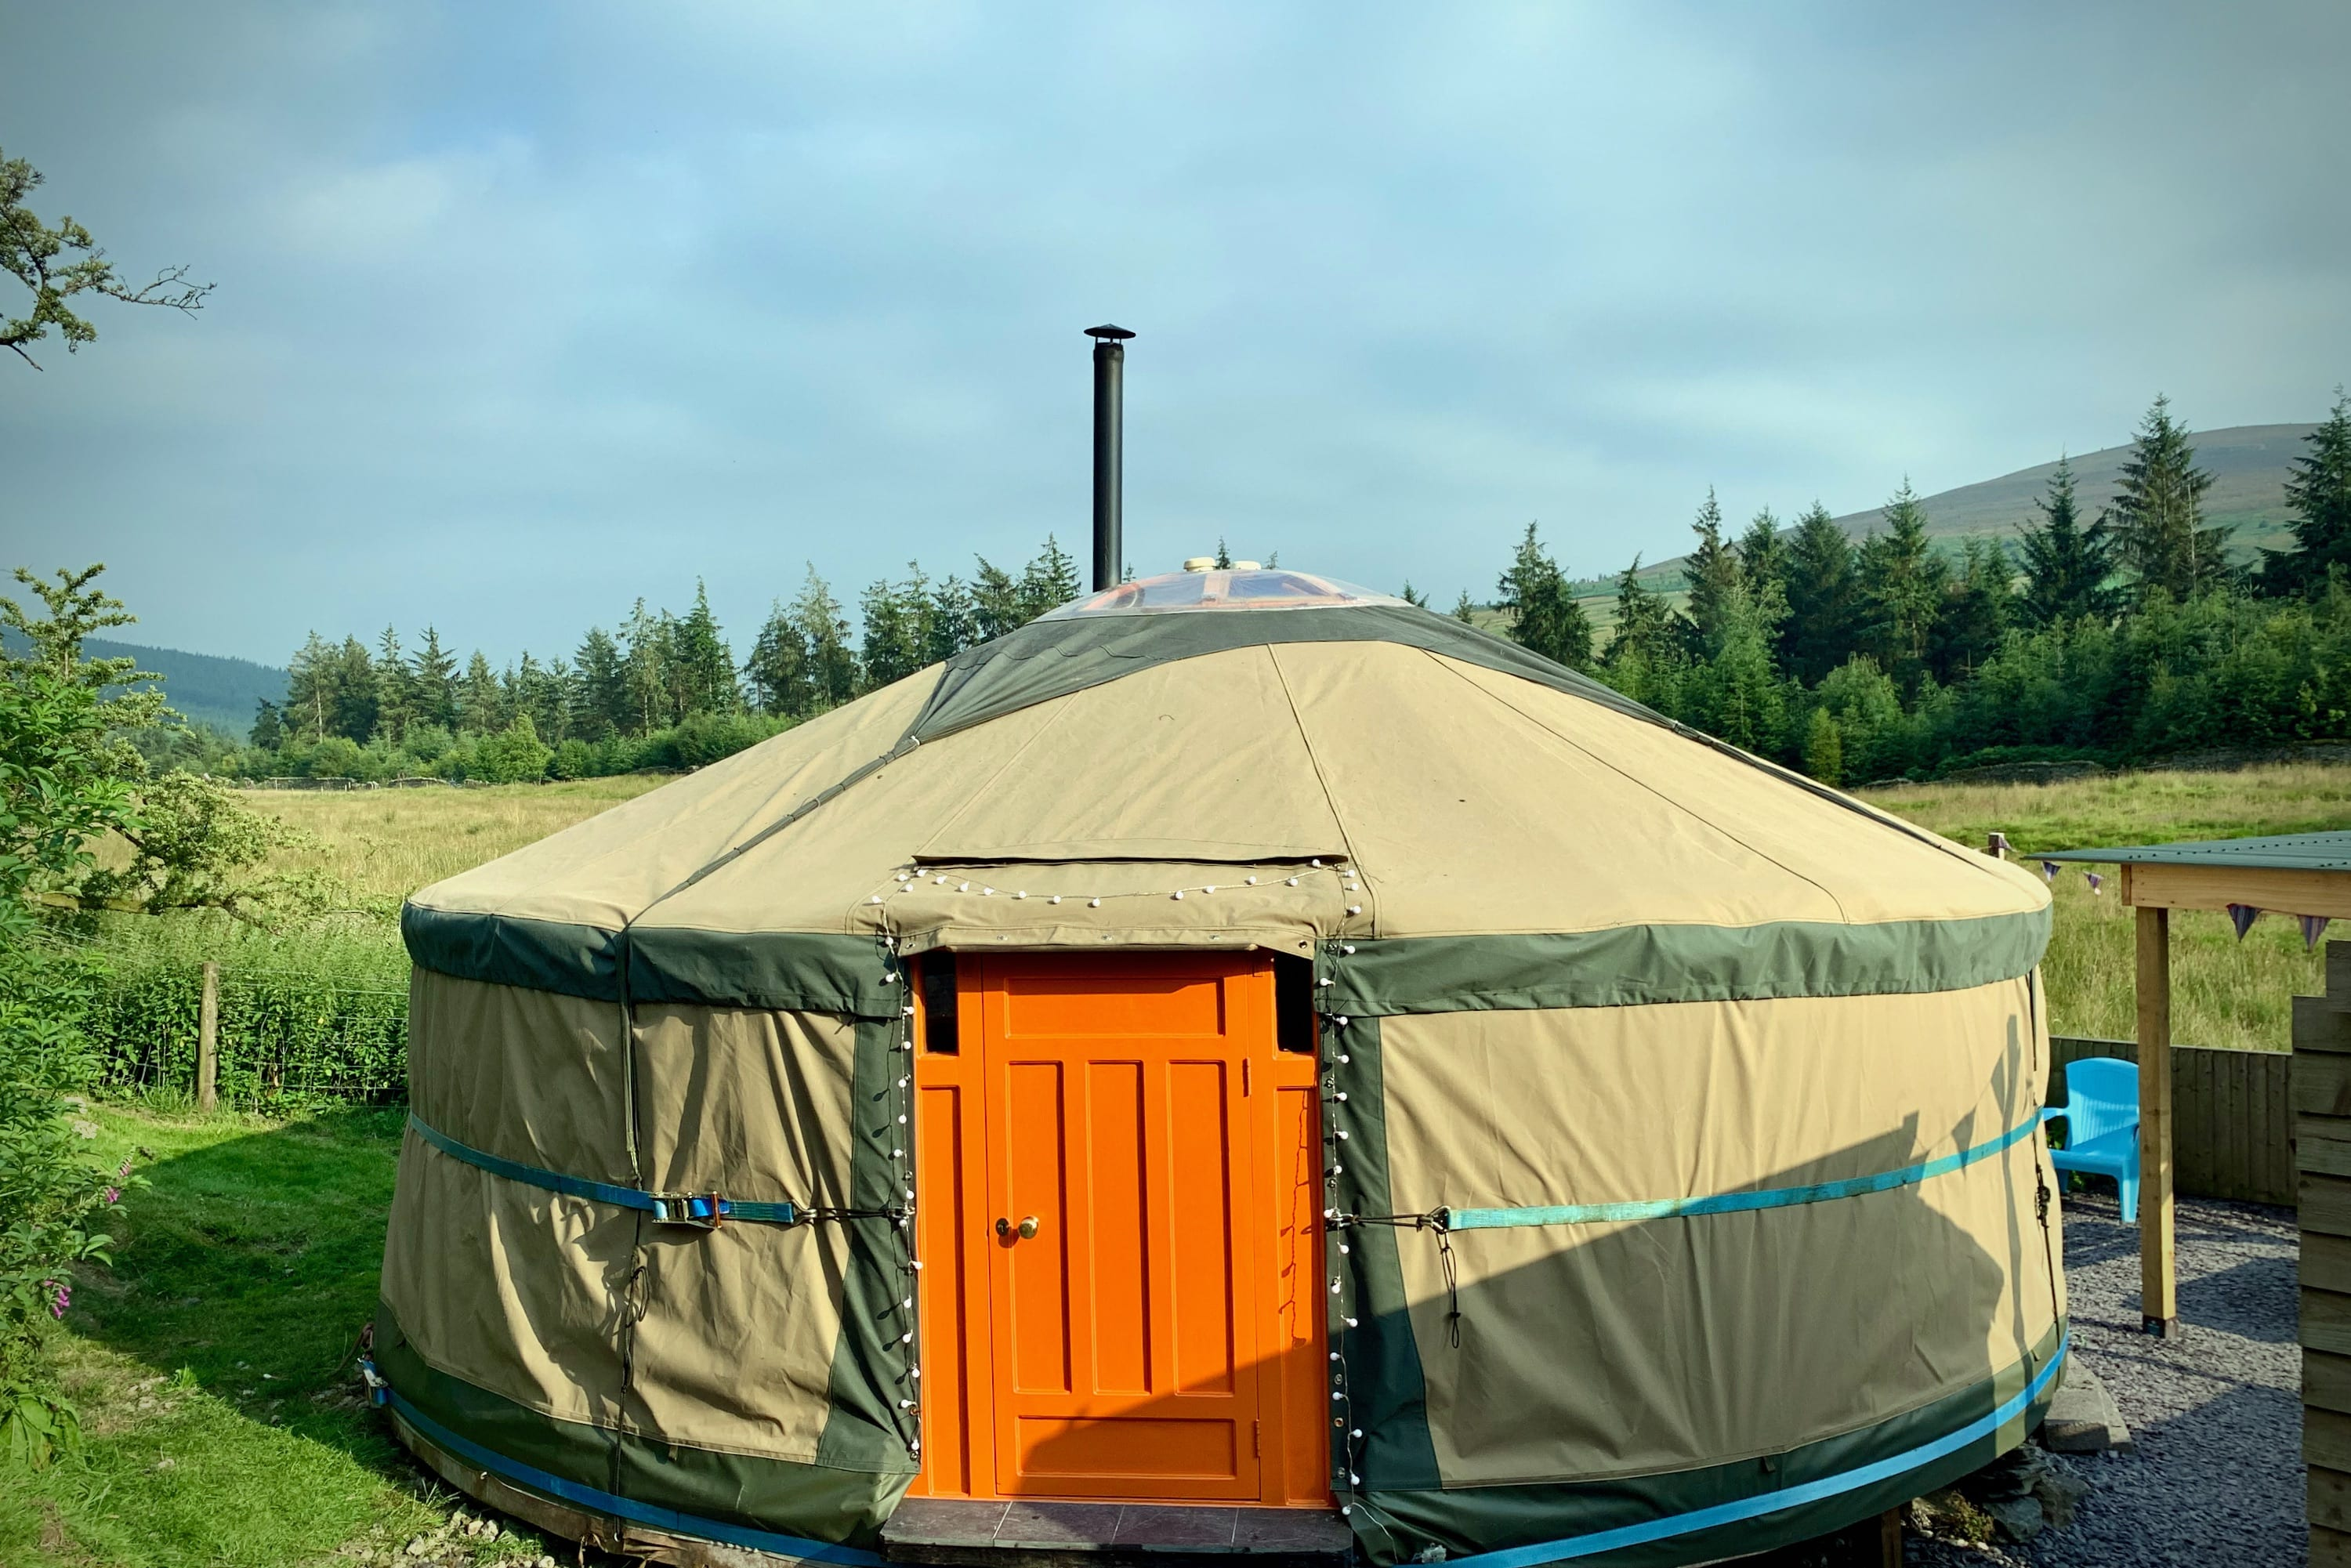 Ty crwn mawr yurt outside new cover 2 off grid sustainable eco glampsite and glamping